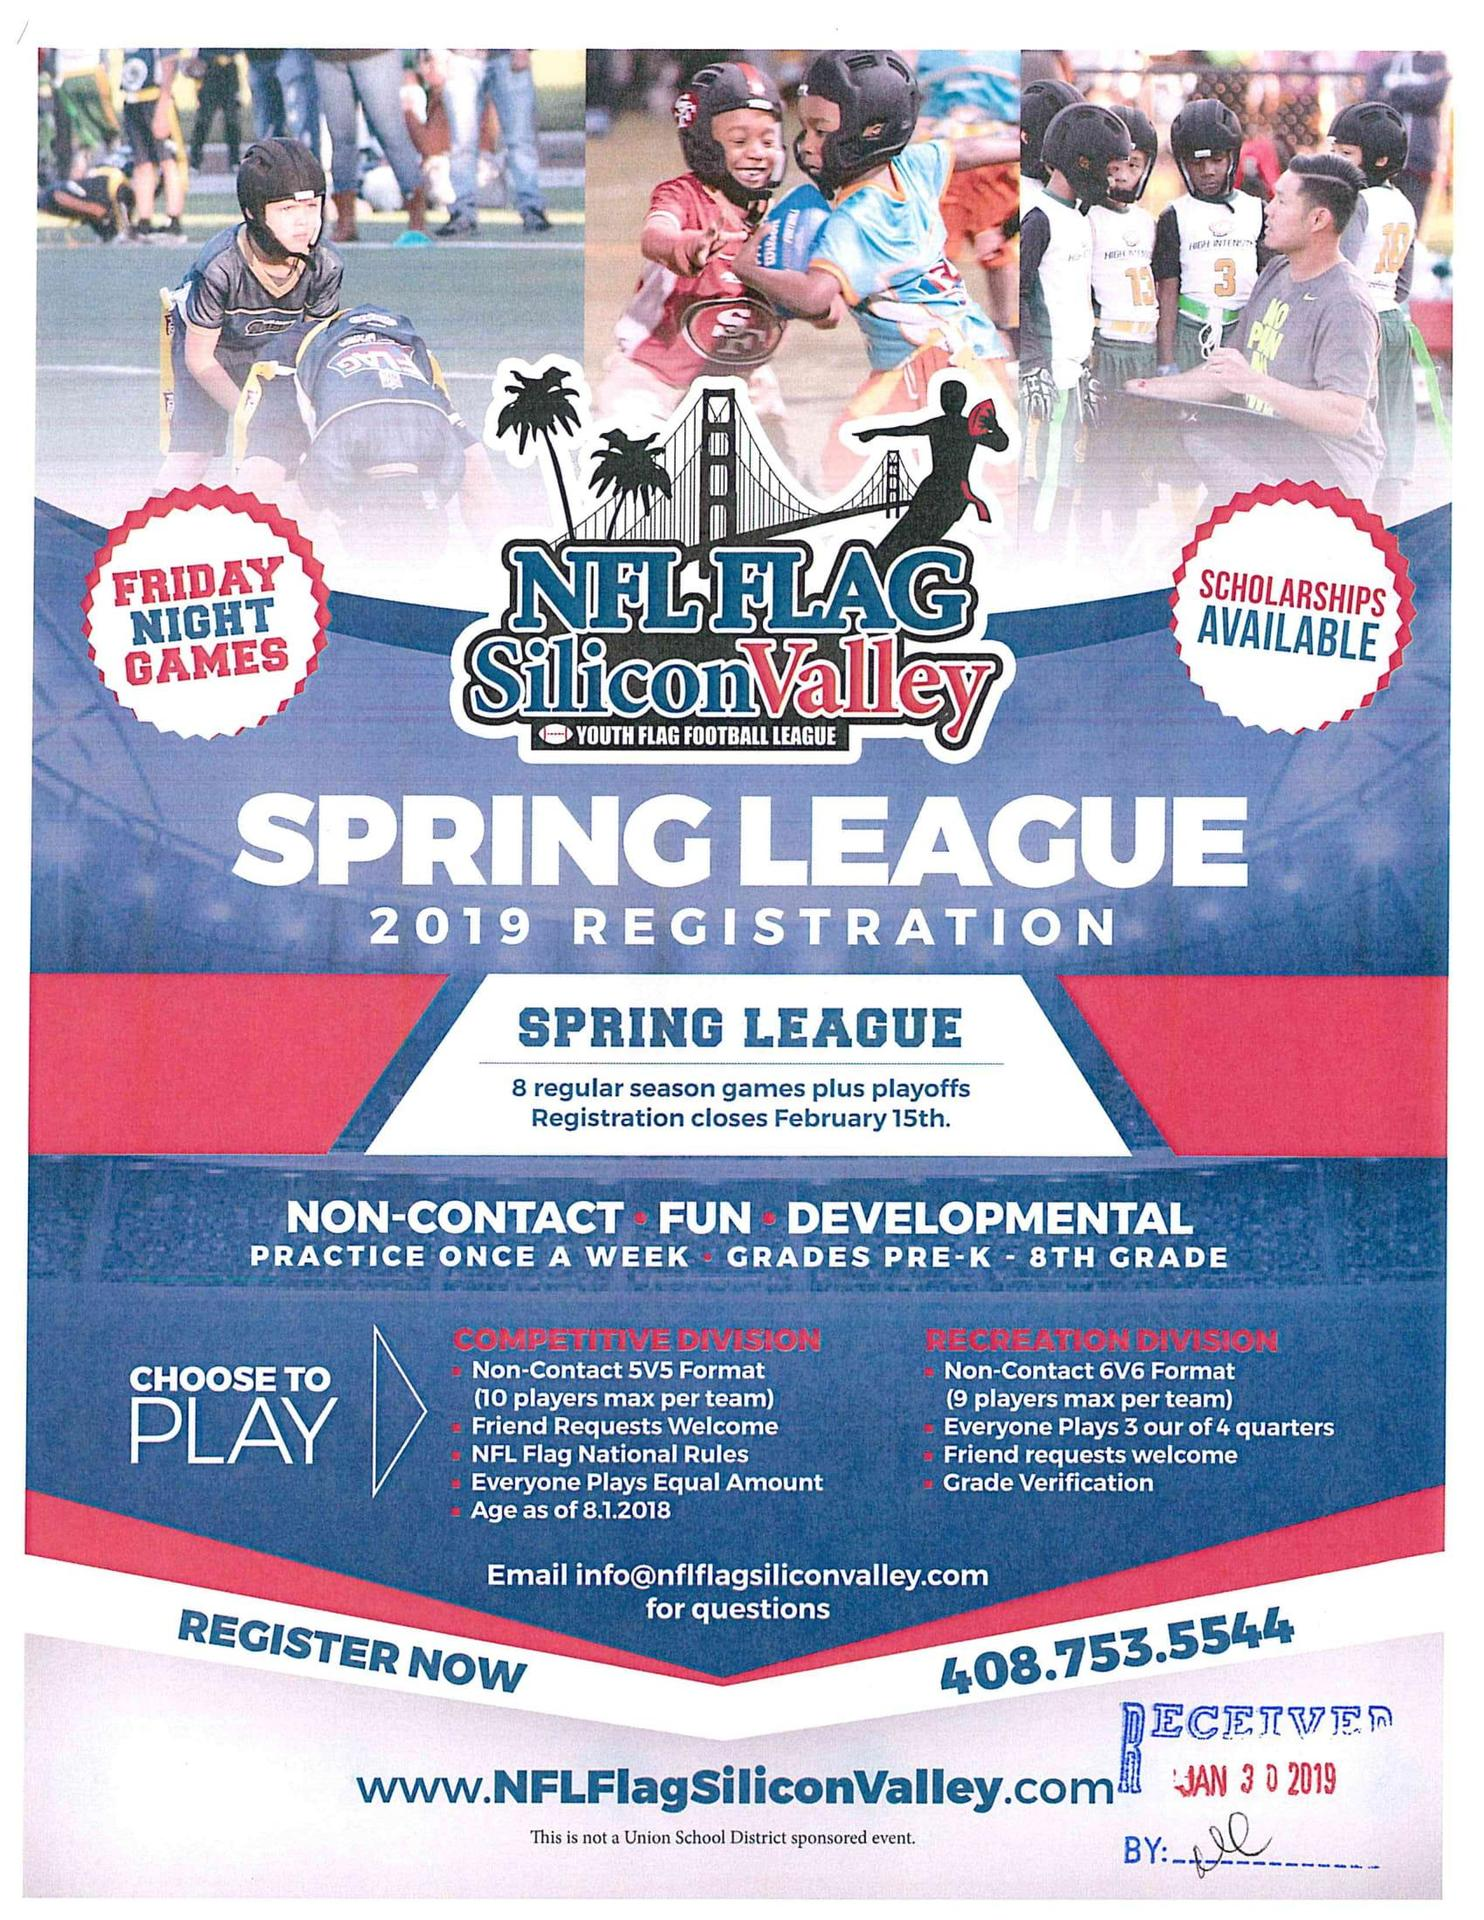 NFL Flag Silicon Valley Youth Flag Football League